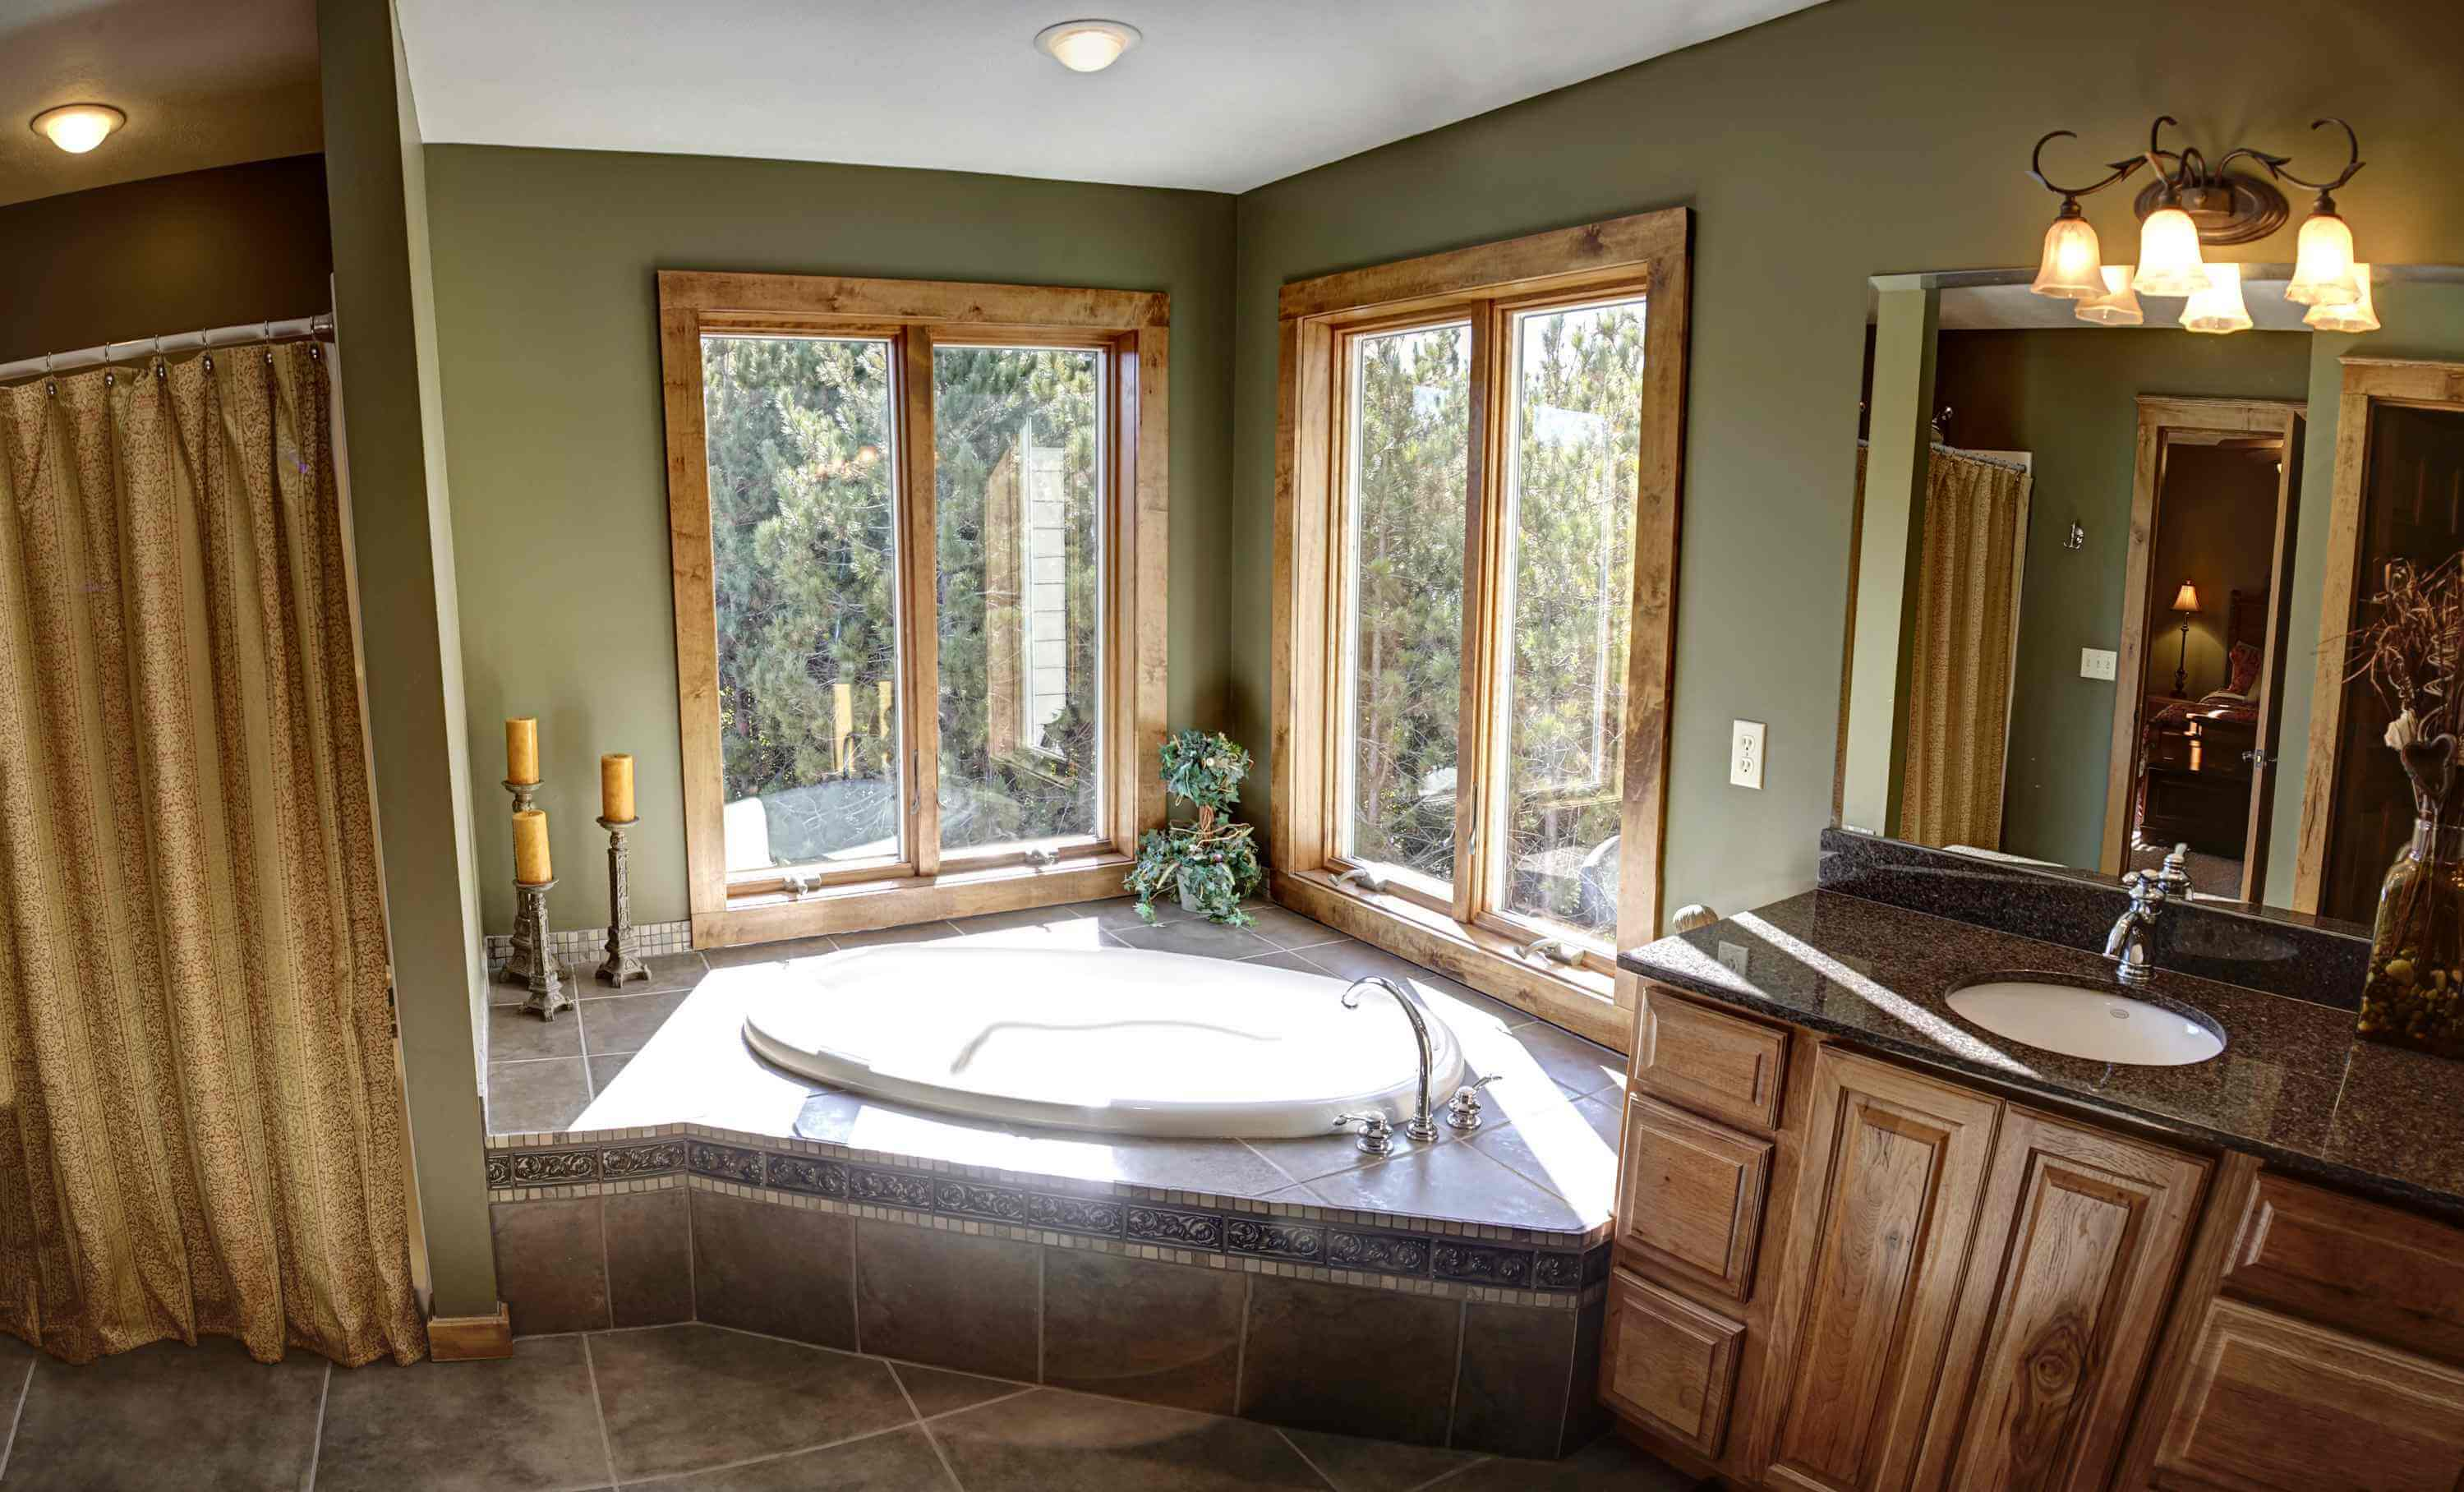 Hot tub in the master bath